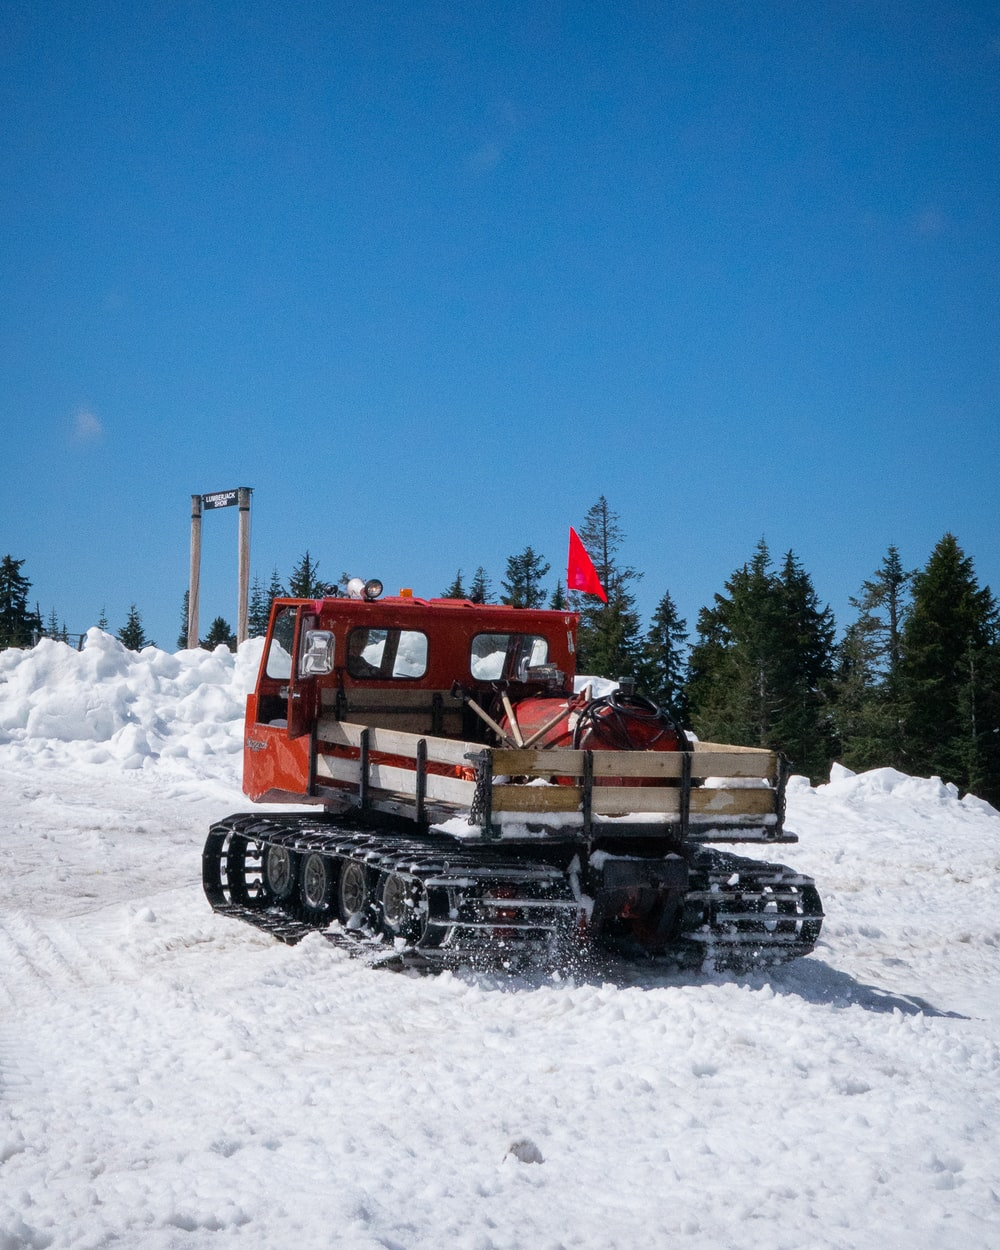 Red And Black Snow Truck Photo Free Nature Image On Unsplash